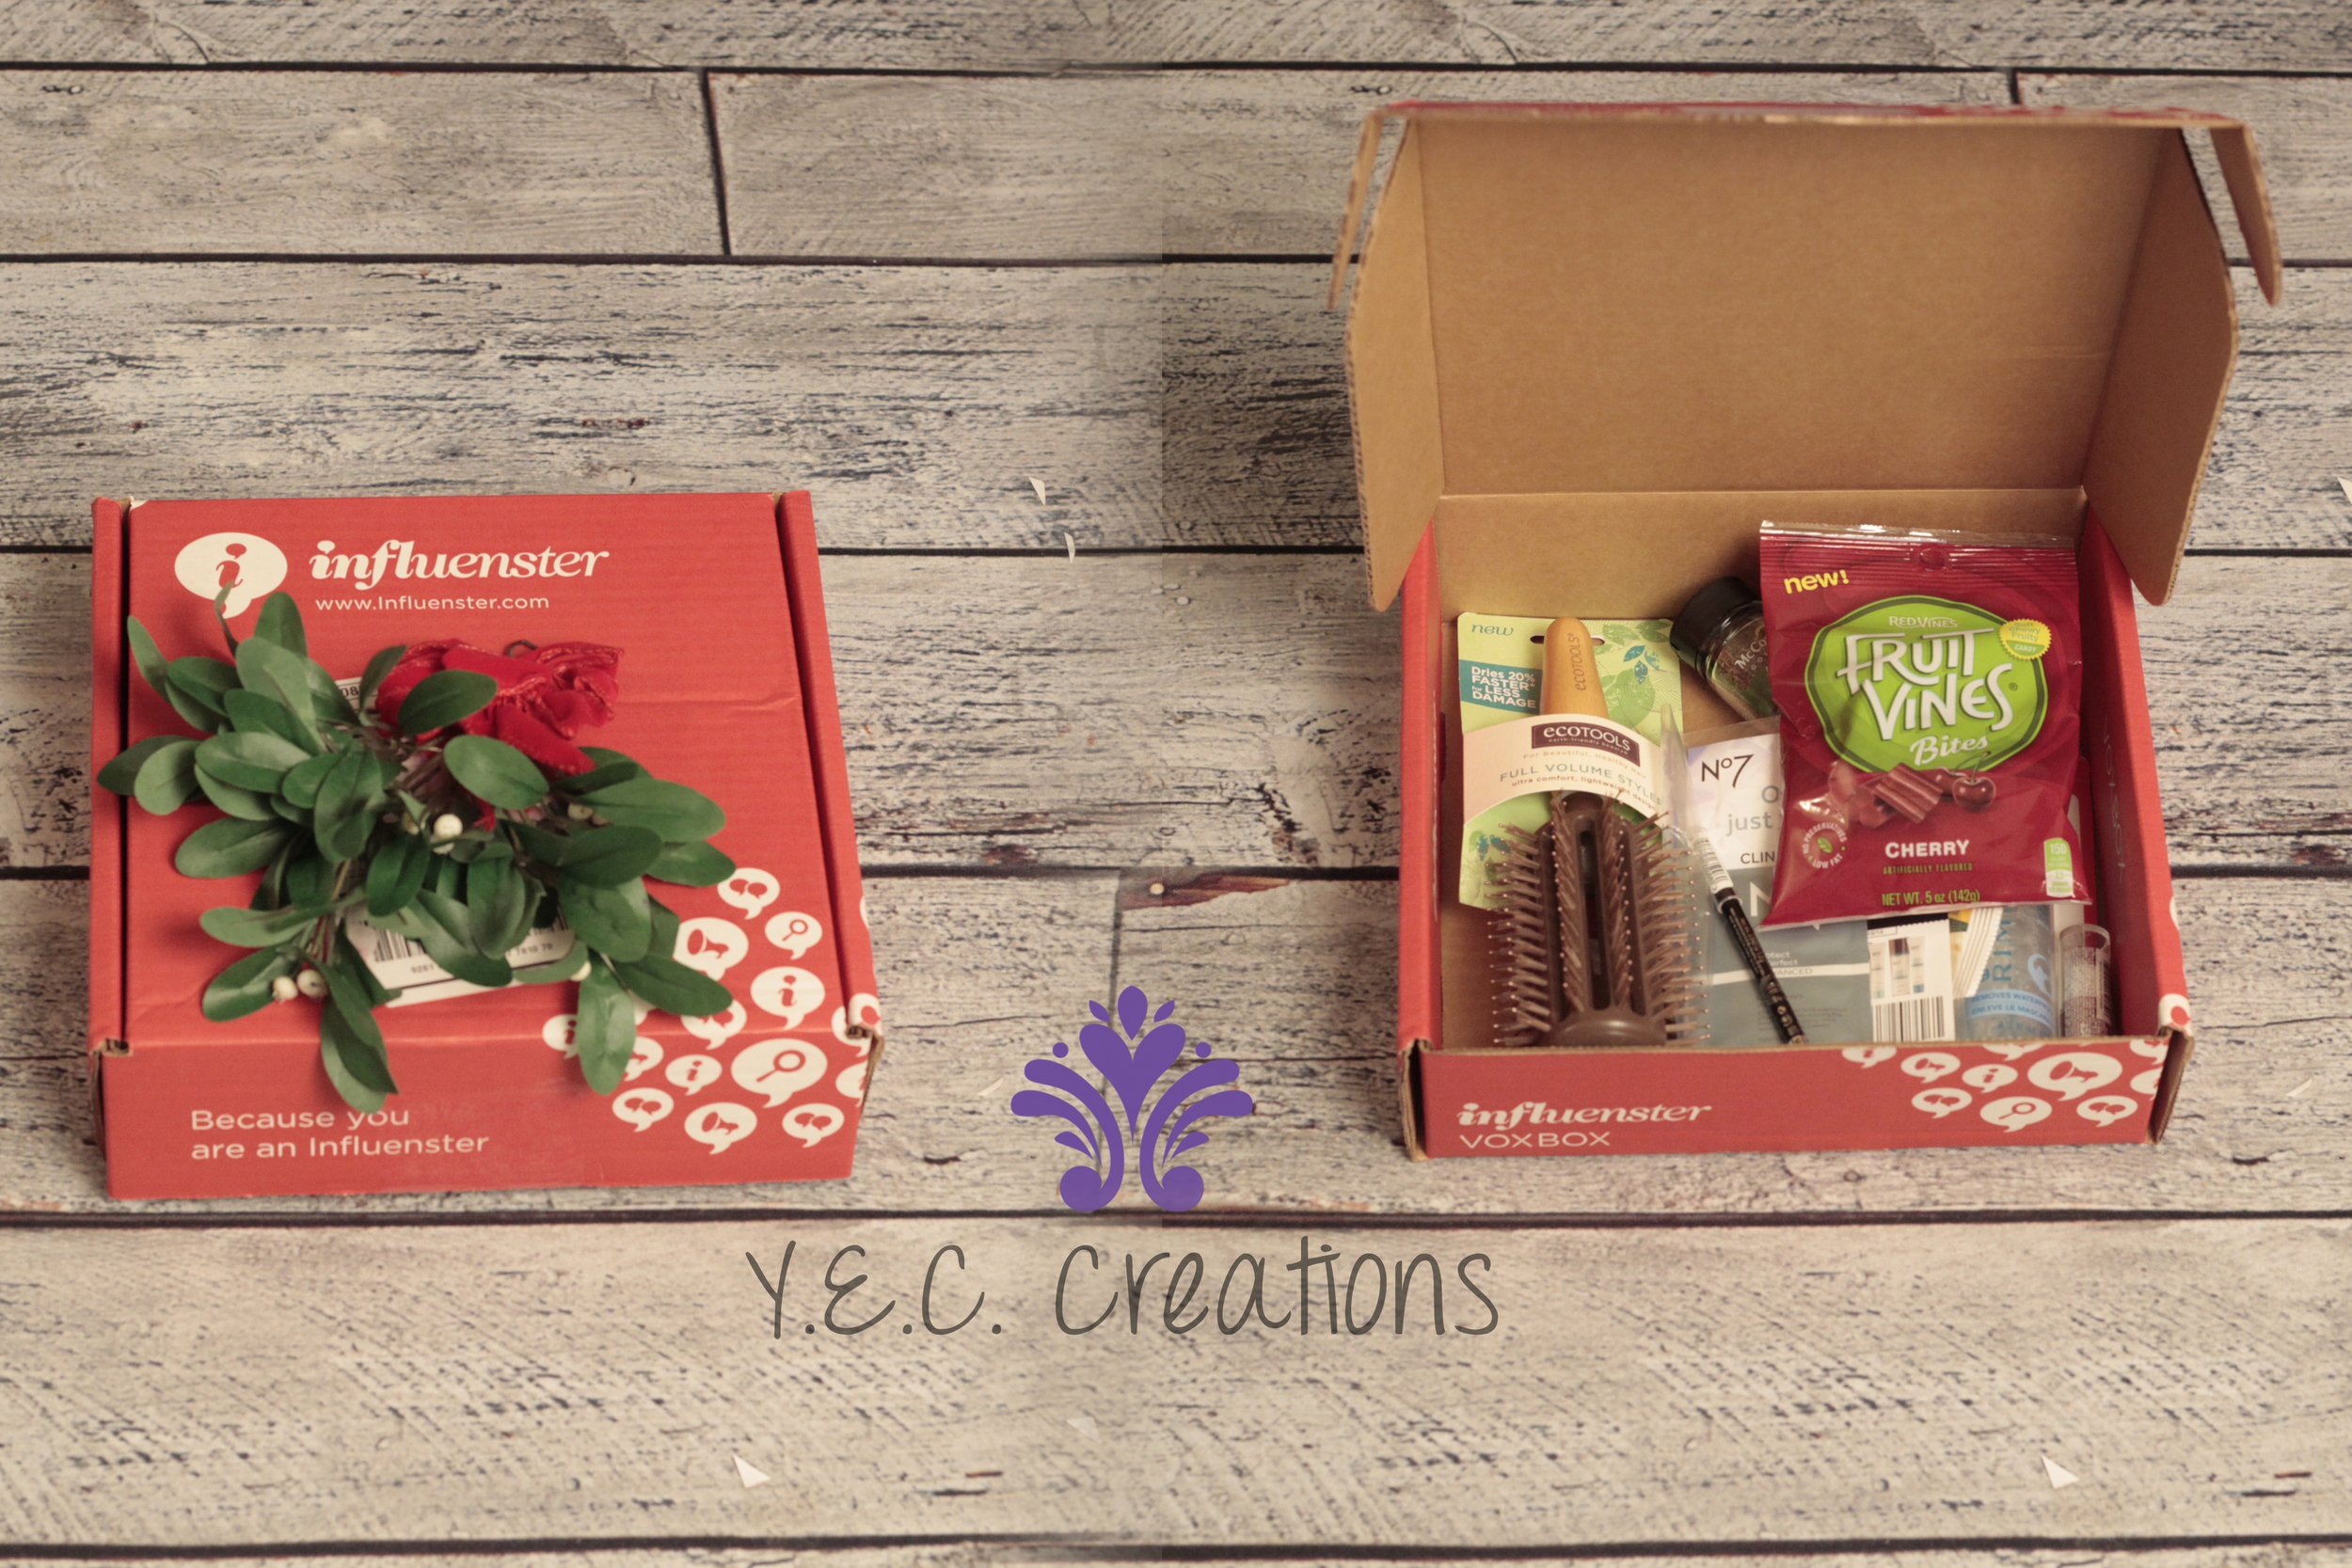 Here is a view of the contents inside this VoxBox